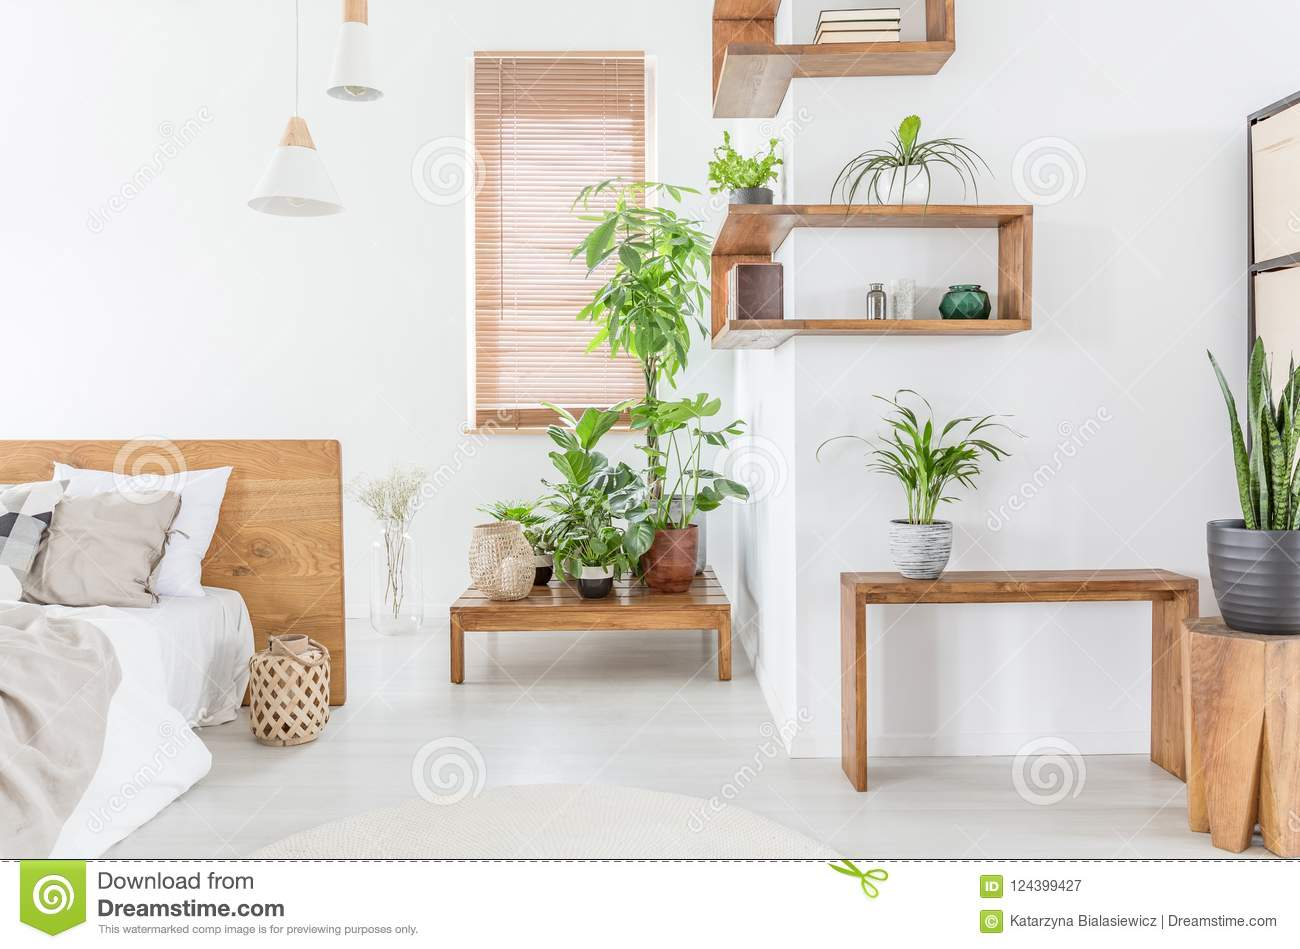 Plants On Wooden Table In White Bedroom Interior With Bed Next To Window  With Blinds.